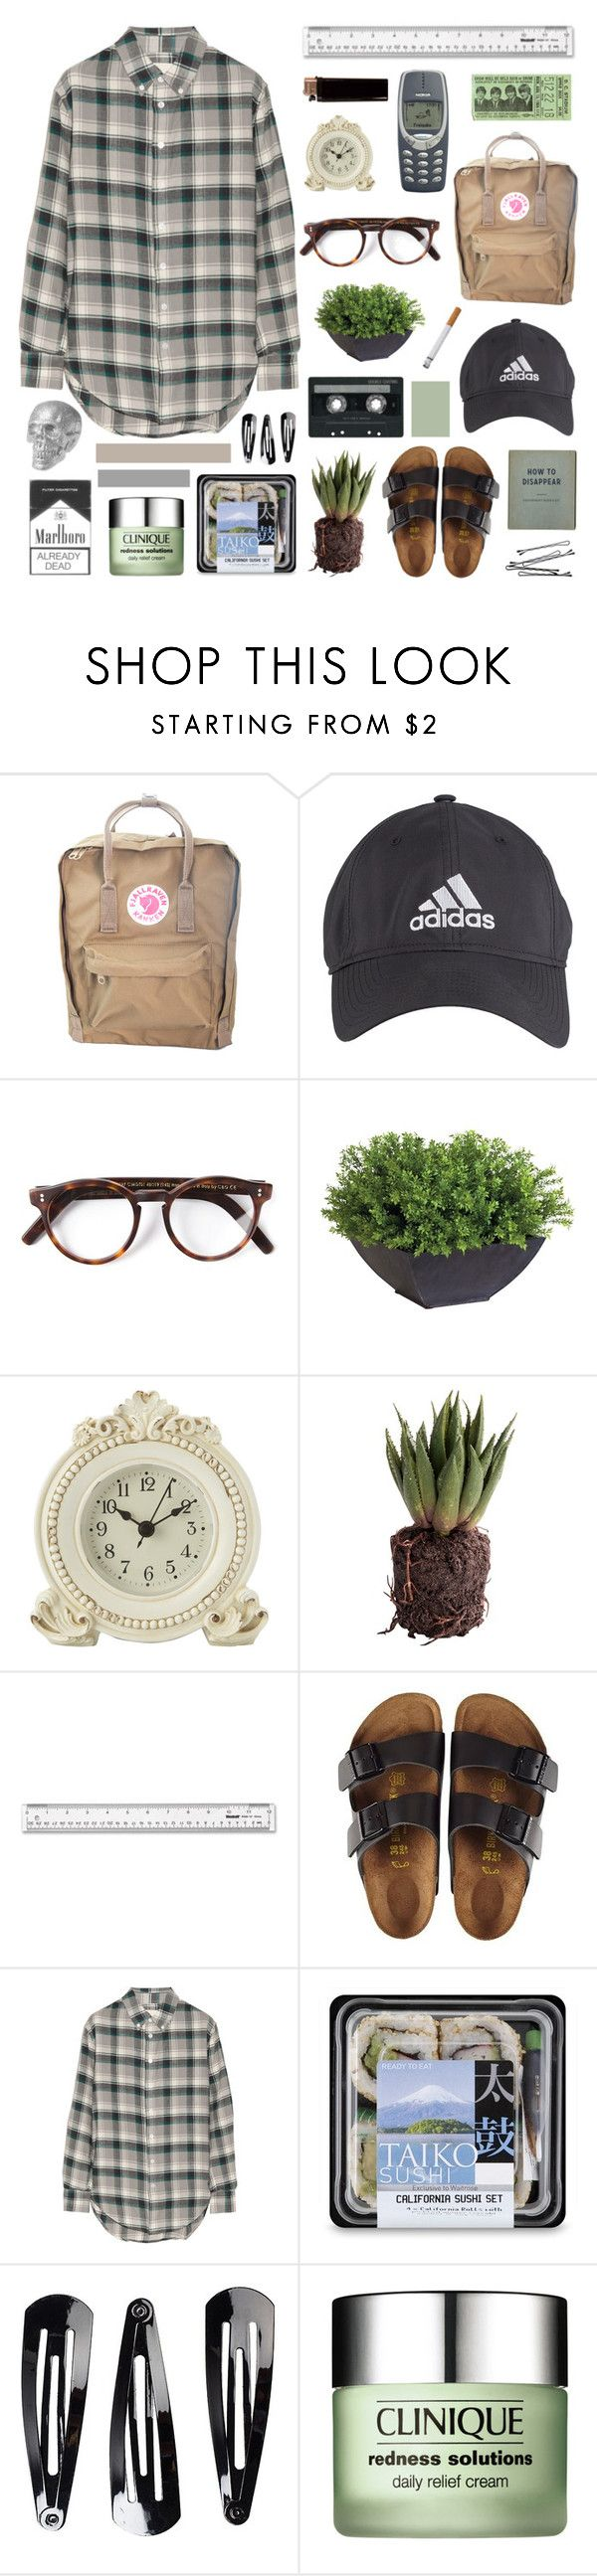 """uncover / zara larsson"" by jpnefn ❤ liked on Polyvore featuring Fjällräven, adidas, Cutler and Gross, Ethan Allen, Laura Ashley, CASSETTE, Birkenstock, BOBBY, Band of Outsiders and NLY Accessories"